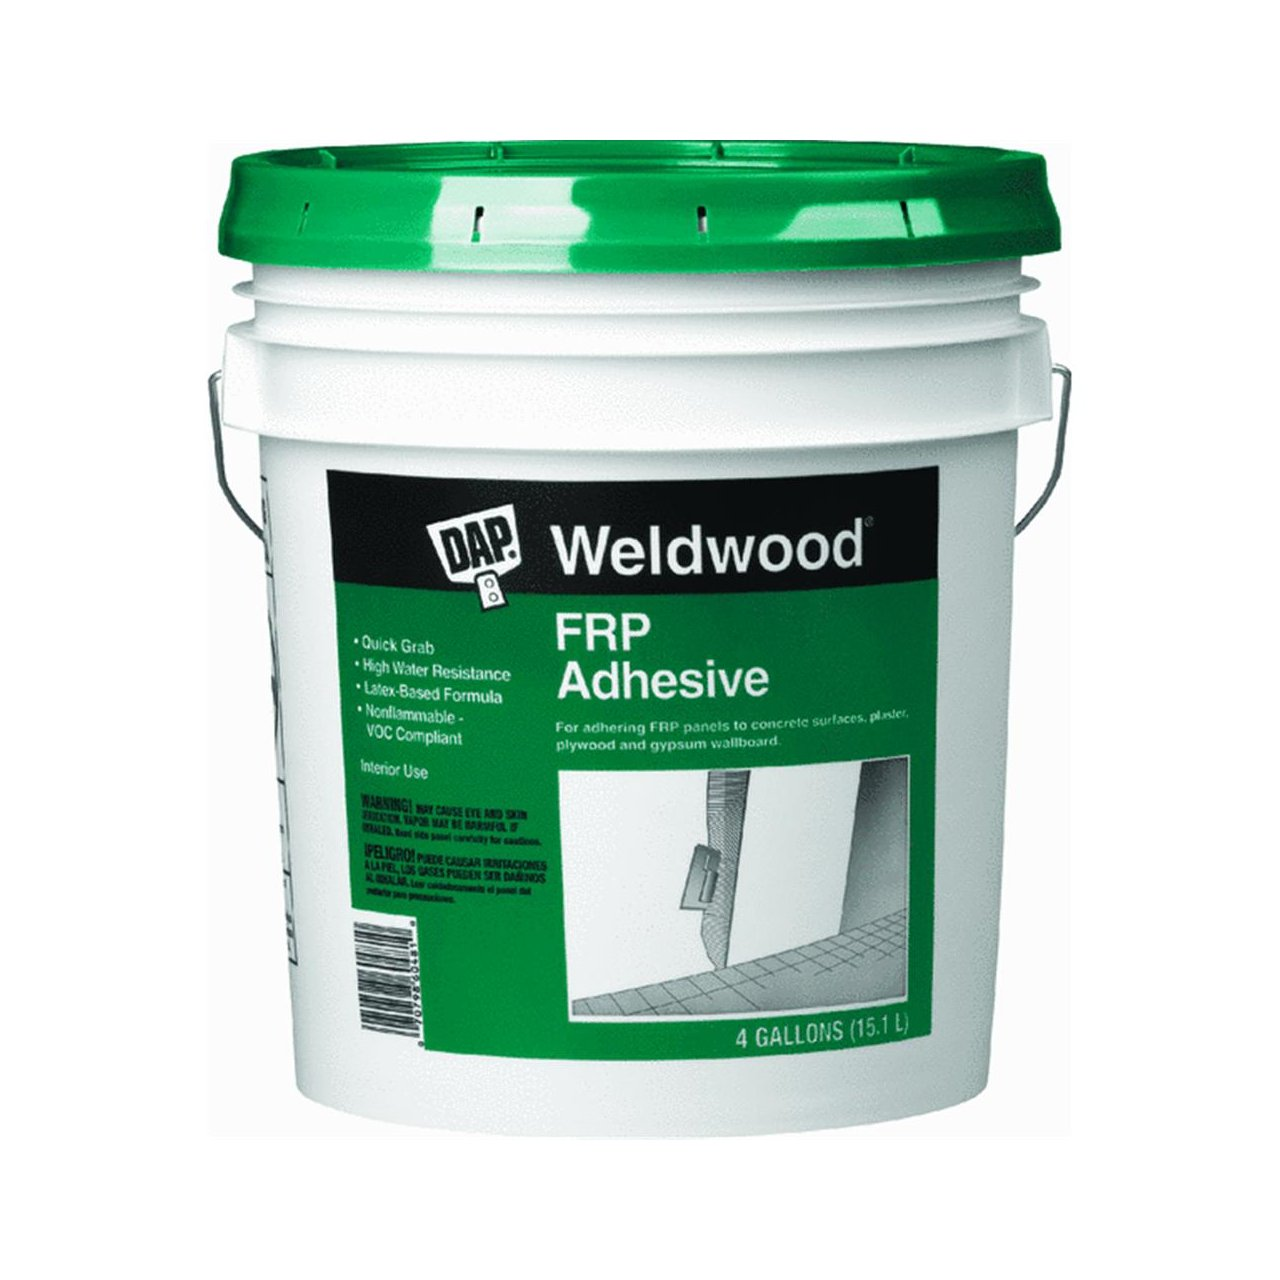 Dap 60481 FRP Latex Based Panel Adhesive 4 Gallon